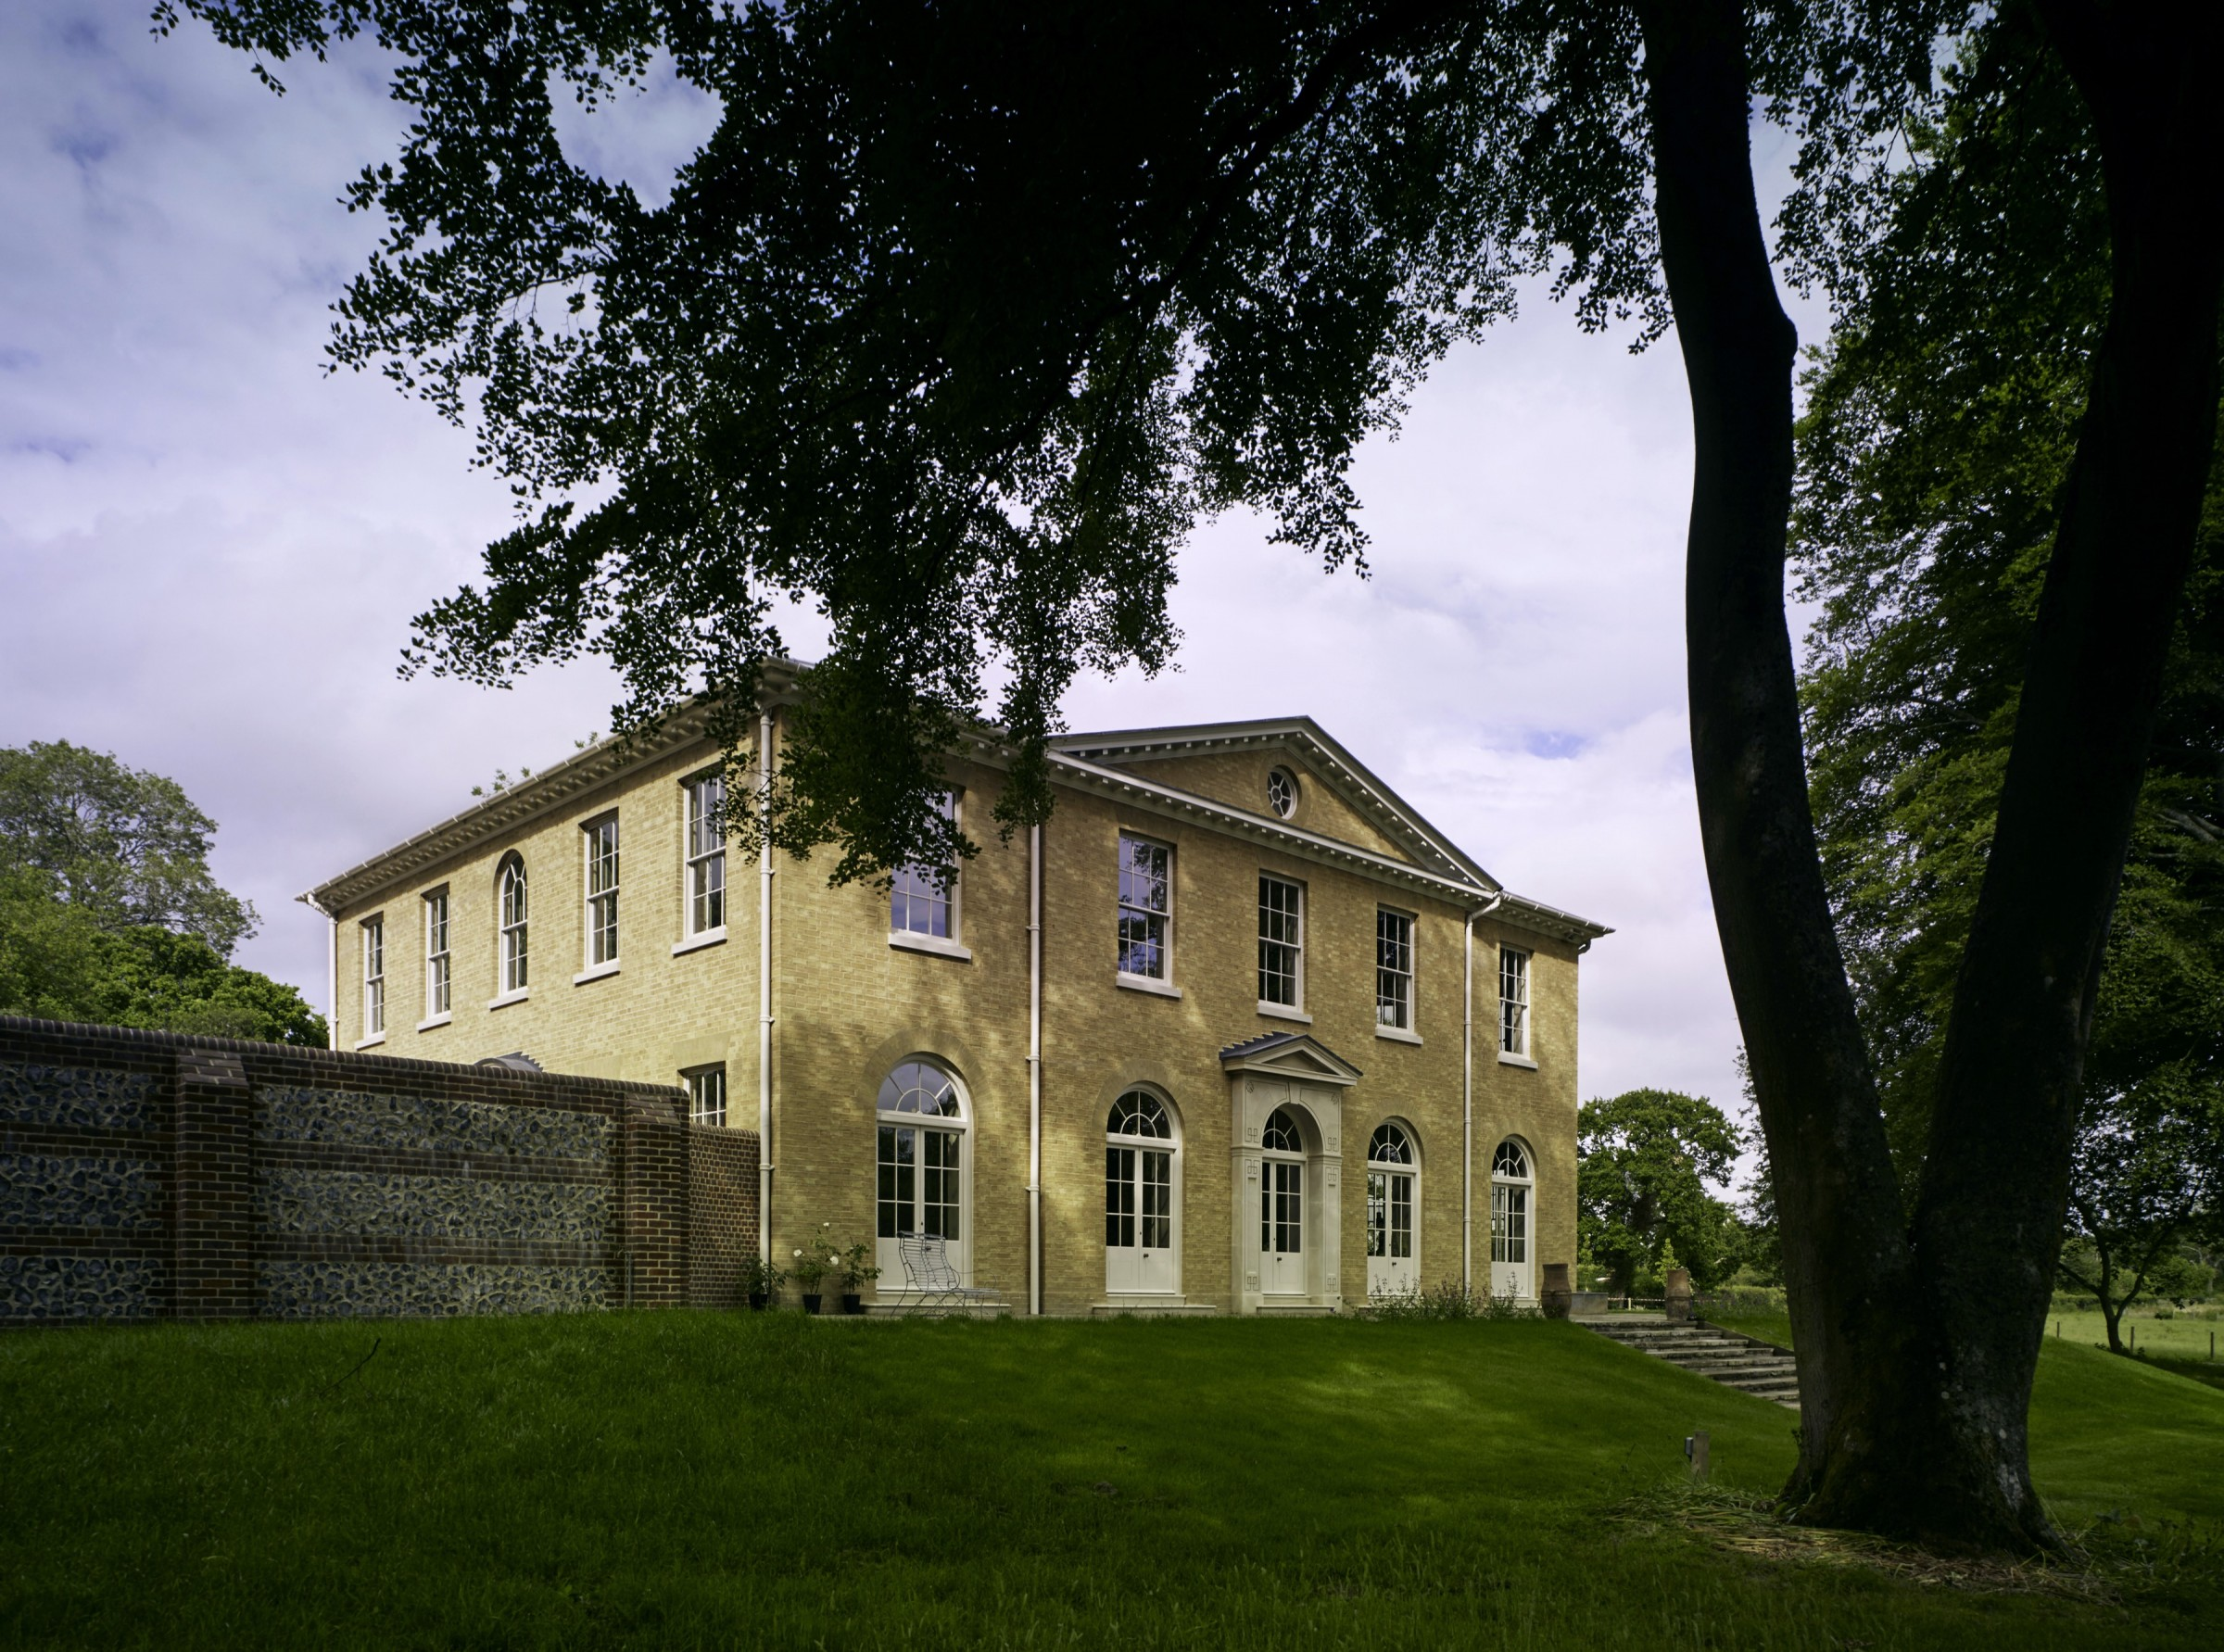 New villa, Hampshire